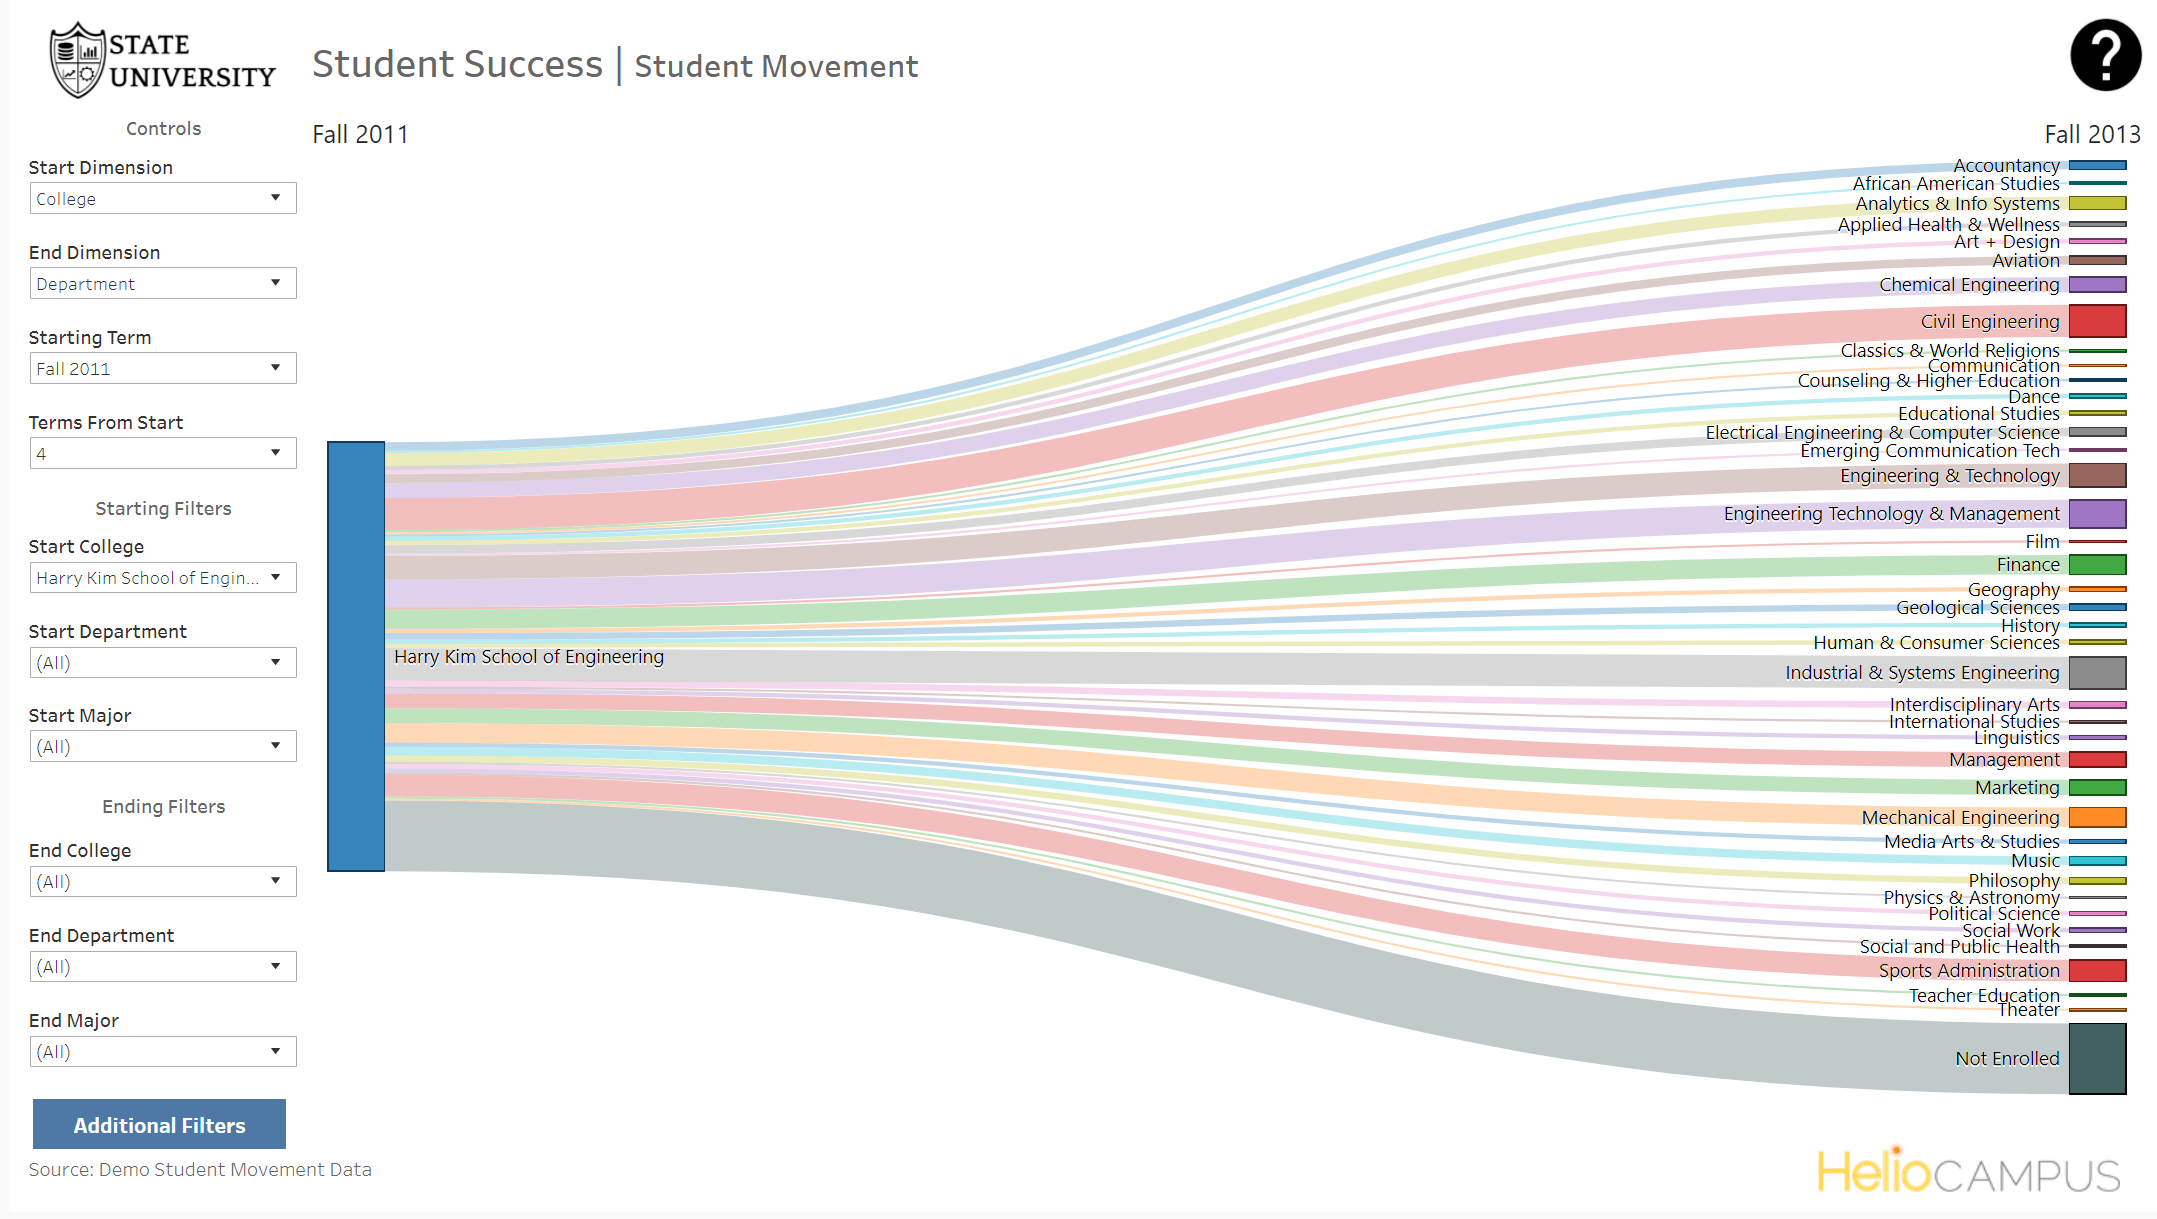 Product screenshot of a graph of student movement across academic majors